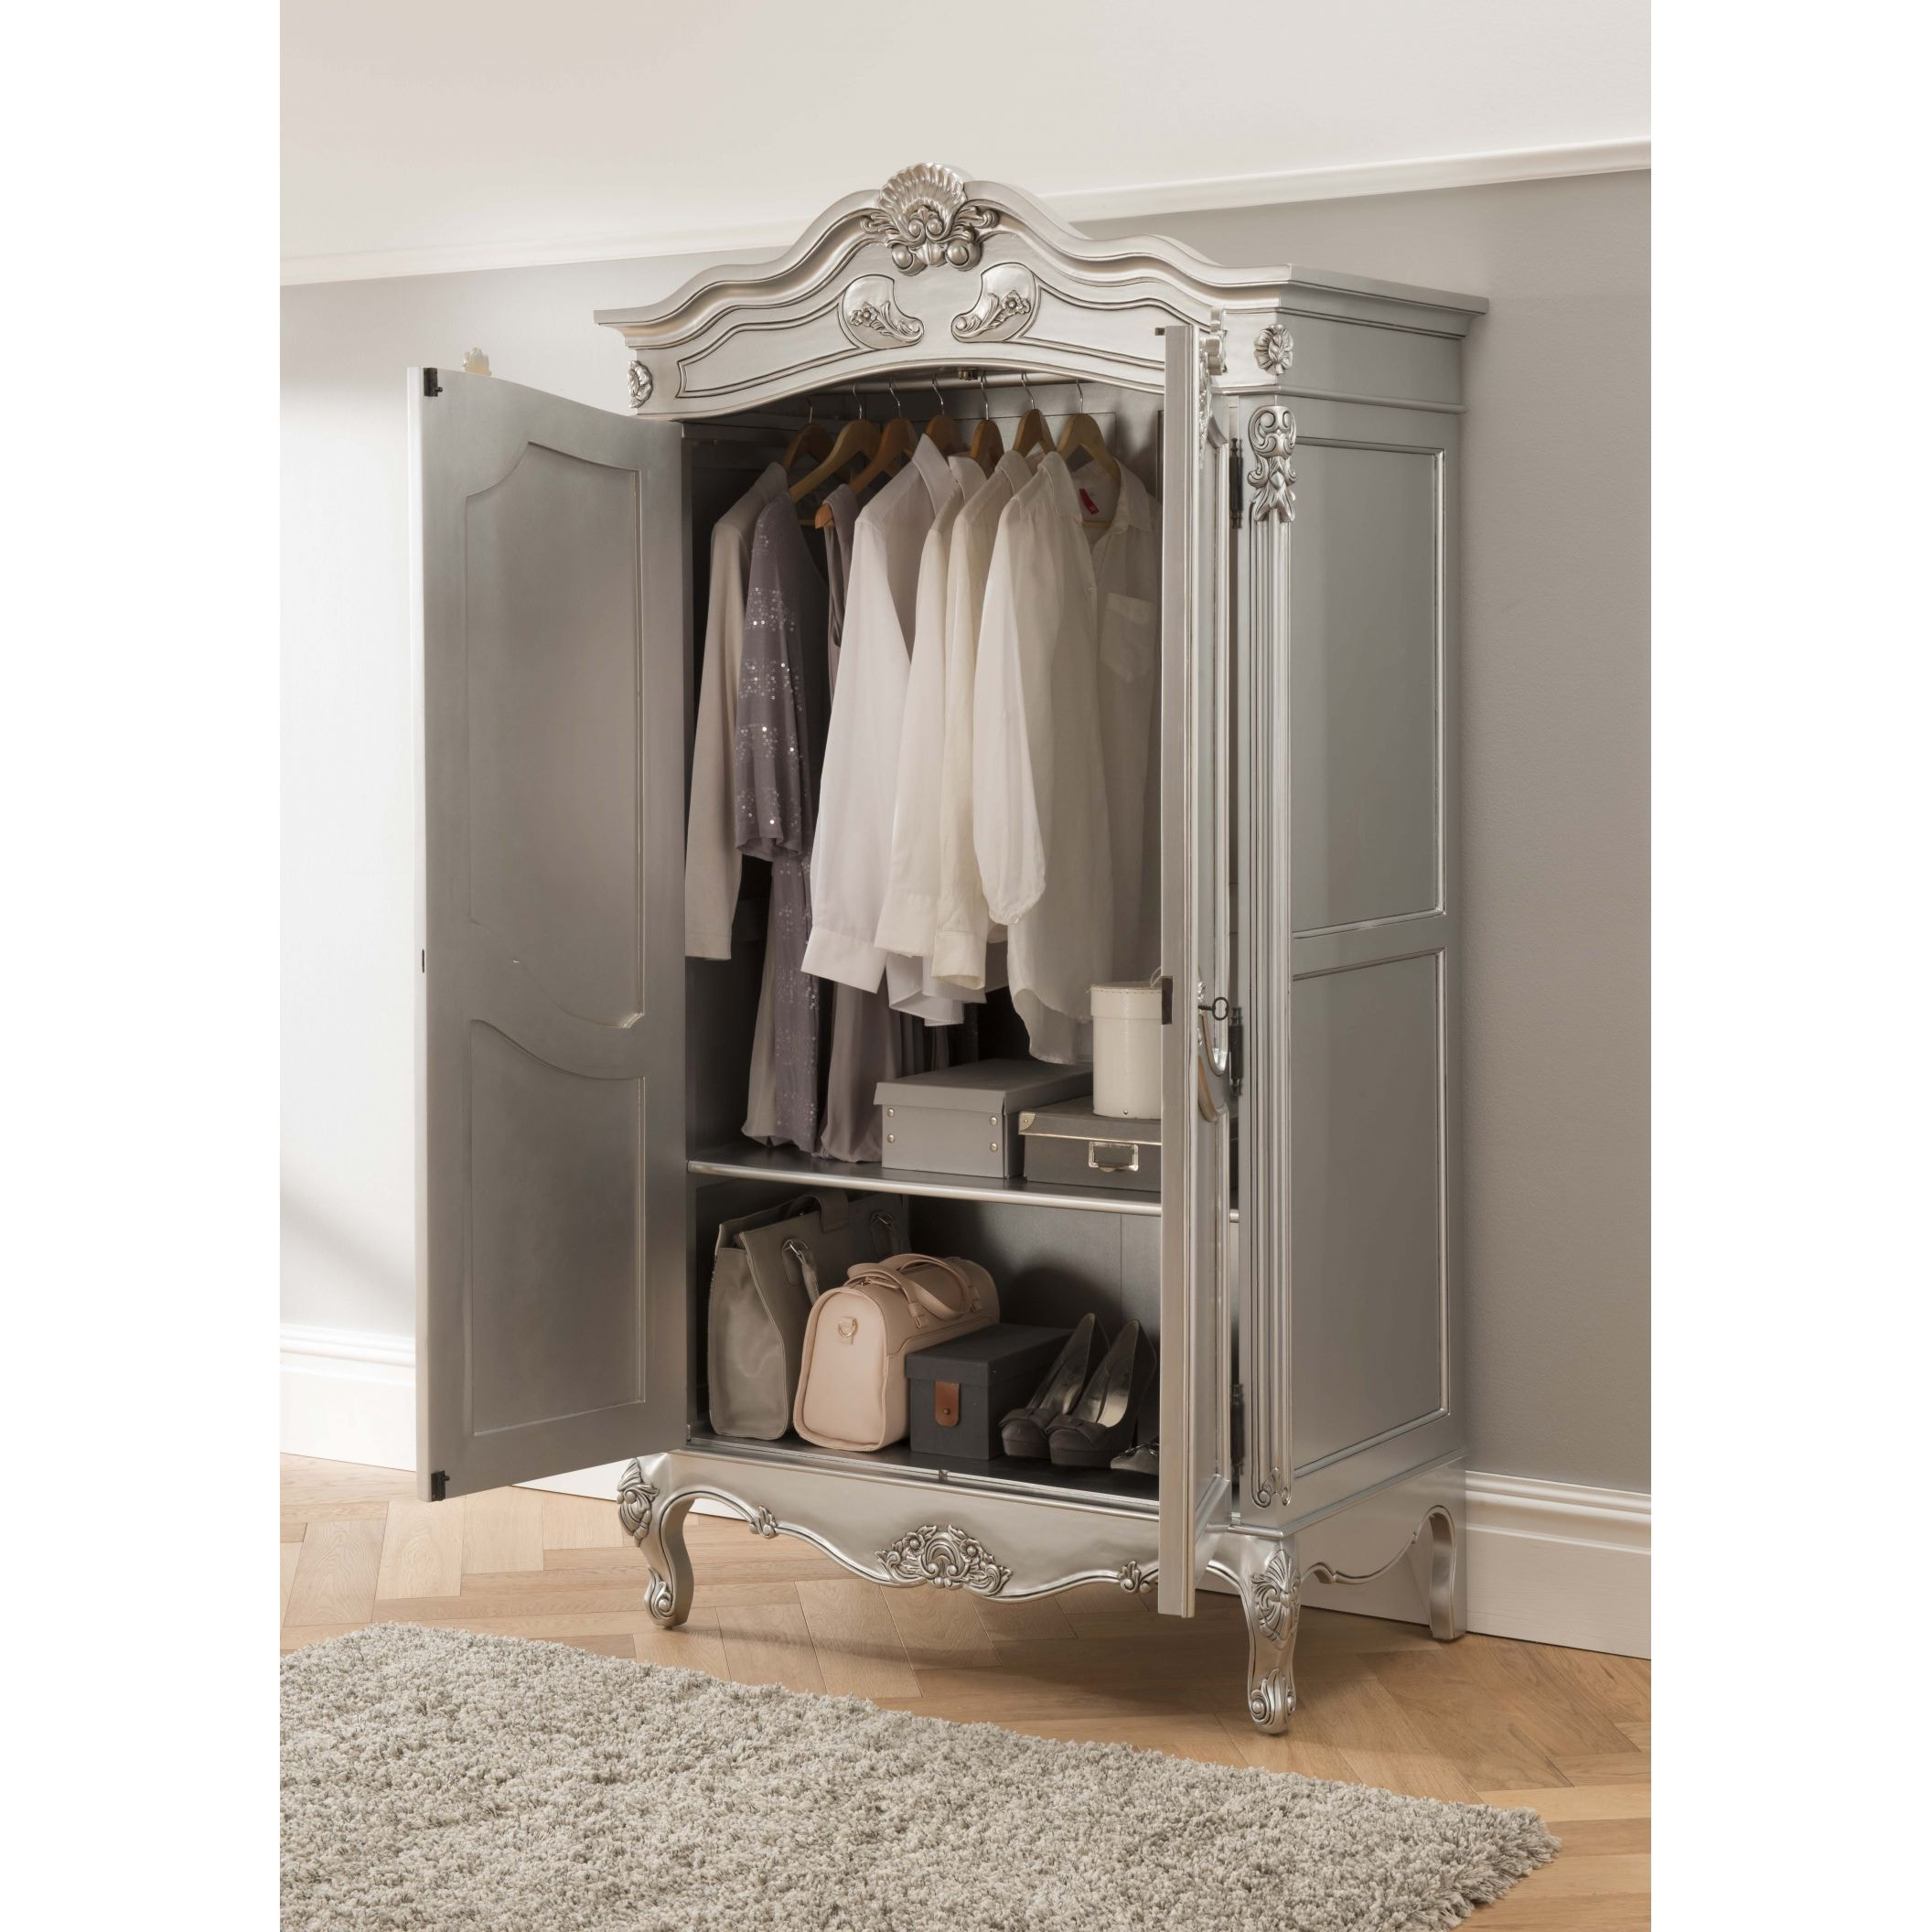 Baroque Antique French Style Wardrobe